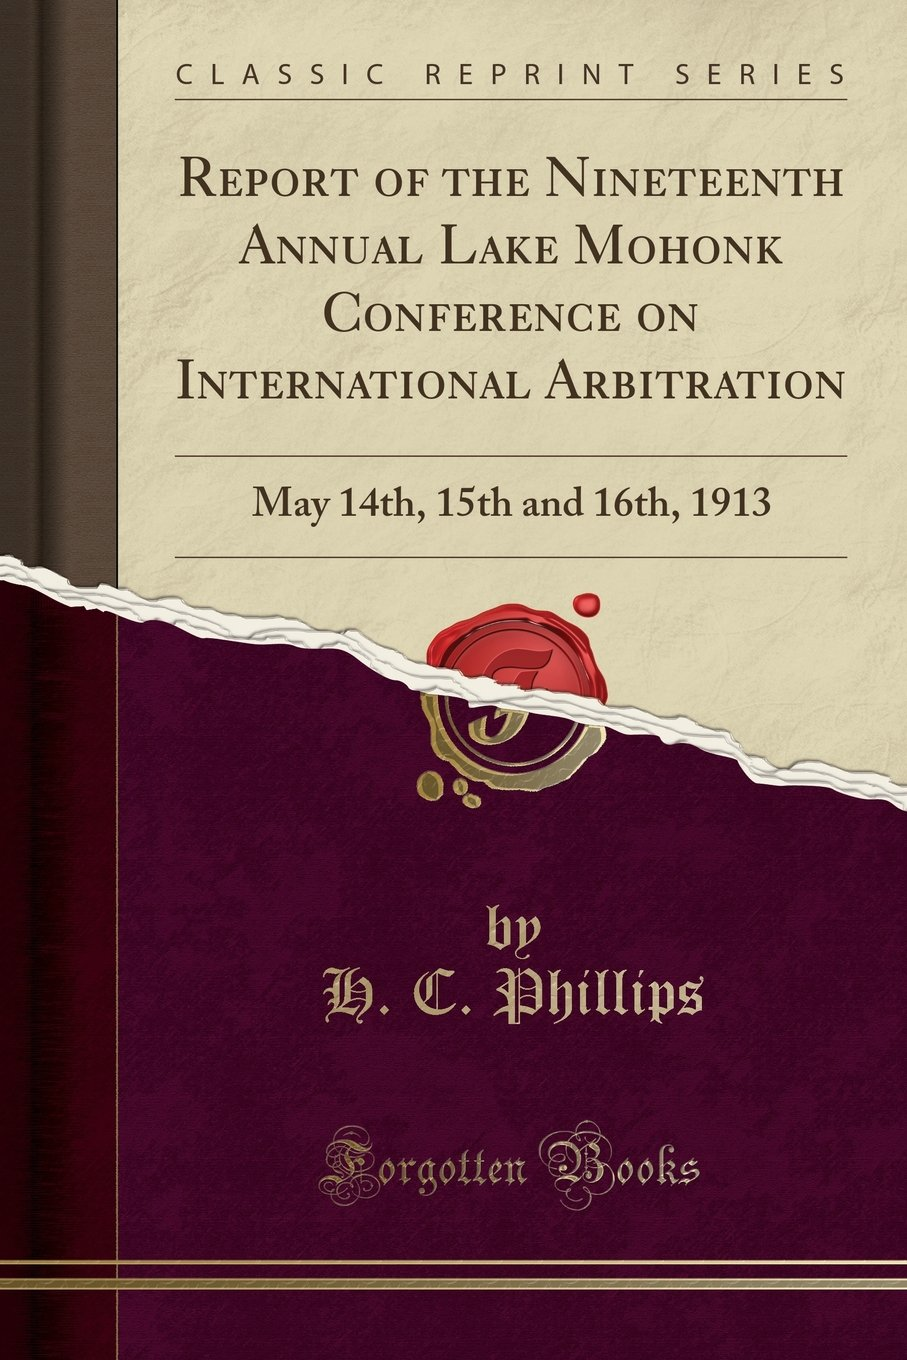 Download Report of the Nineteenth Annual Lake Mohonk Conference on International Arbitration: May 14th, 15th and 16th, 1913 (Classic Reprint) pdf epub